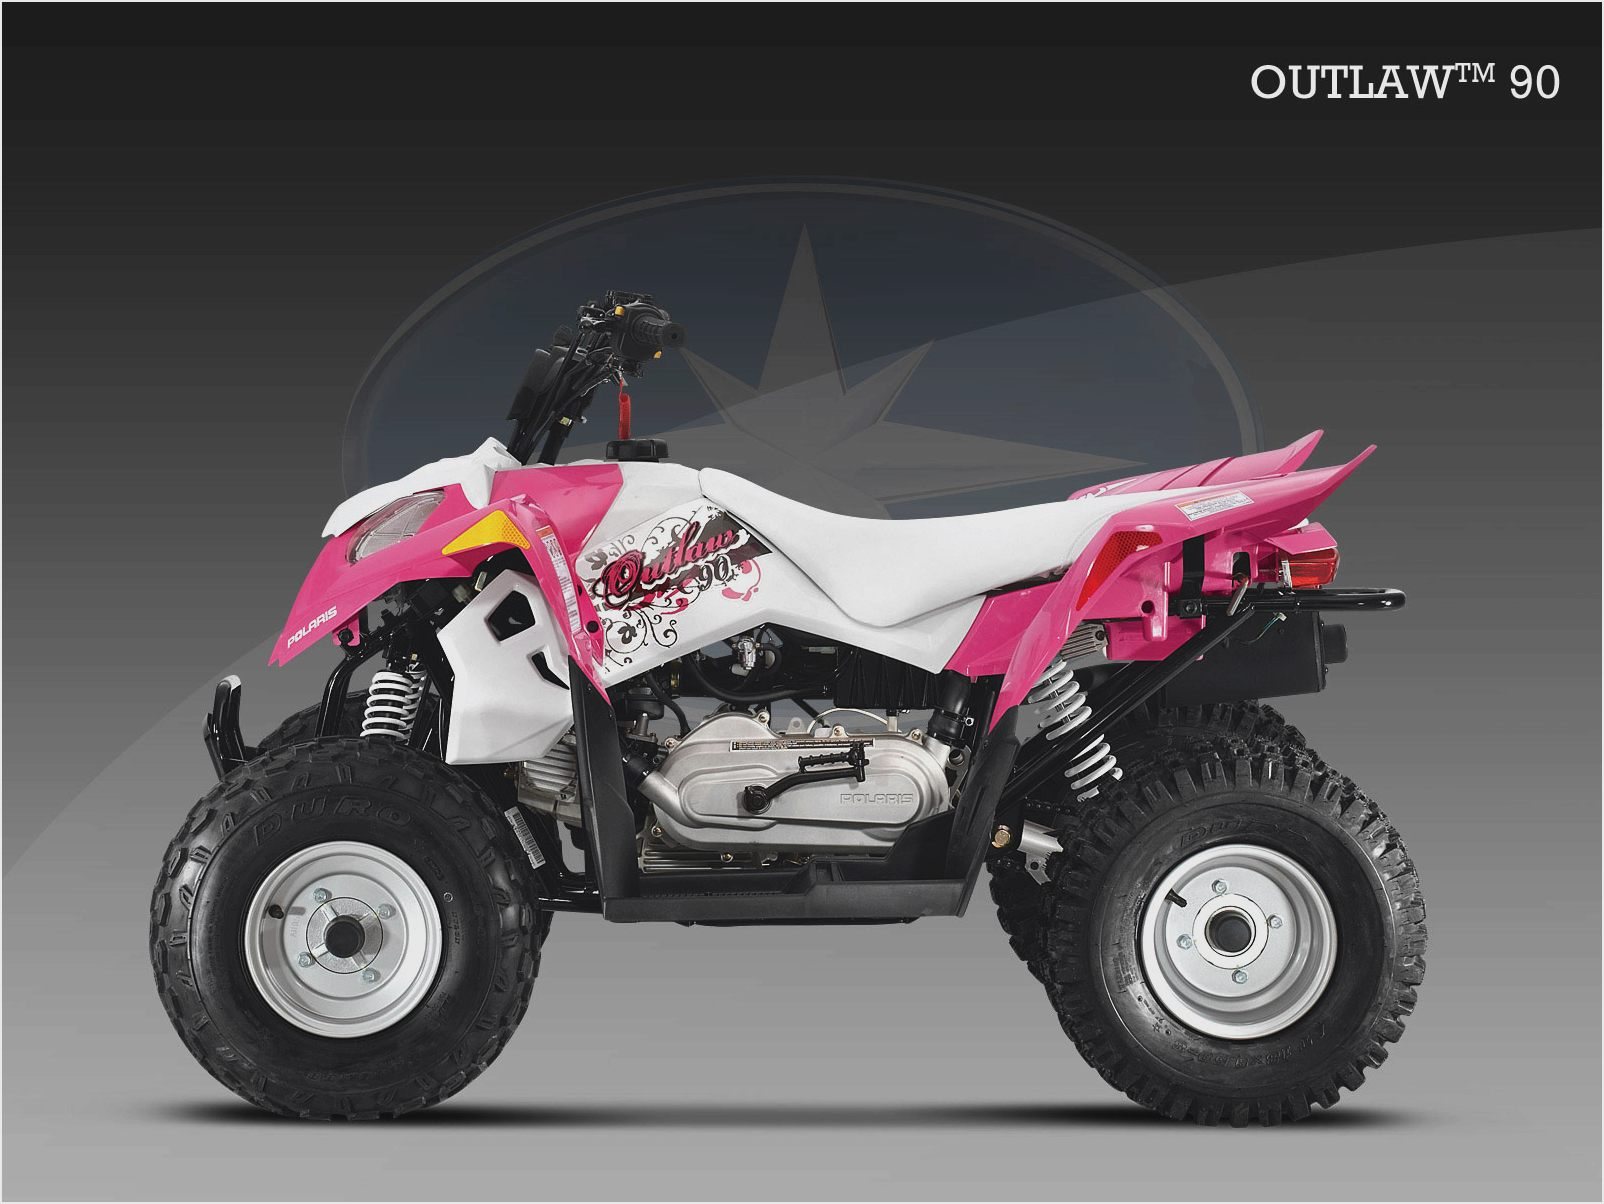 Polaris Sportsman 90 2006 images #175591